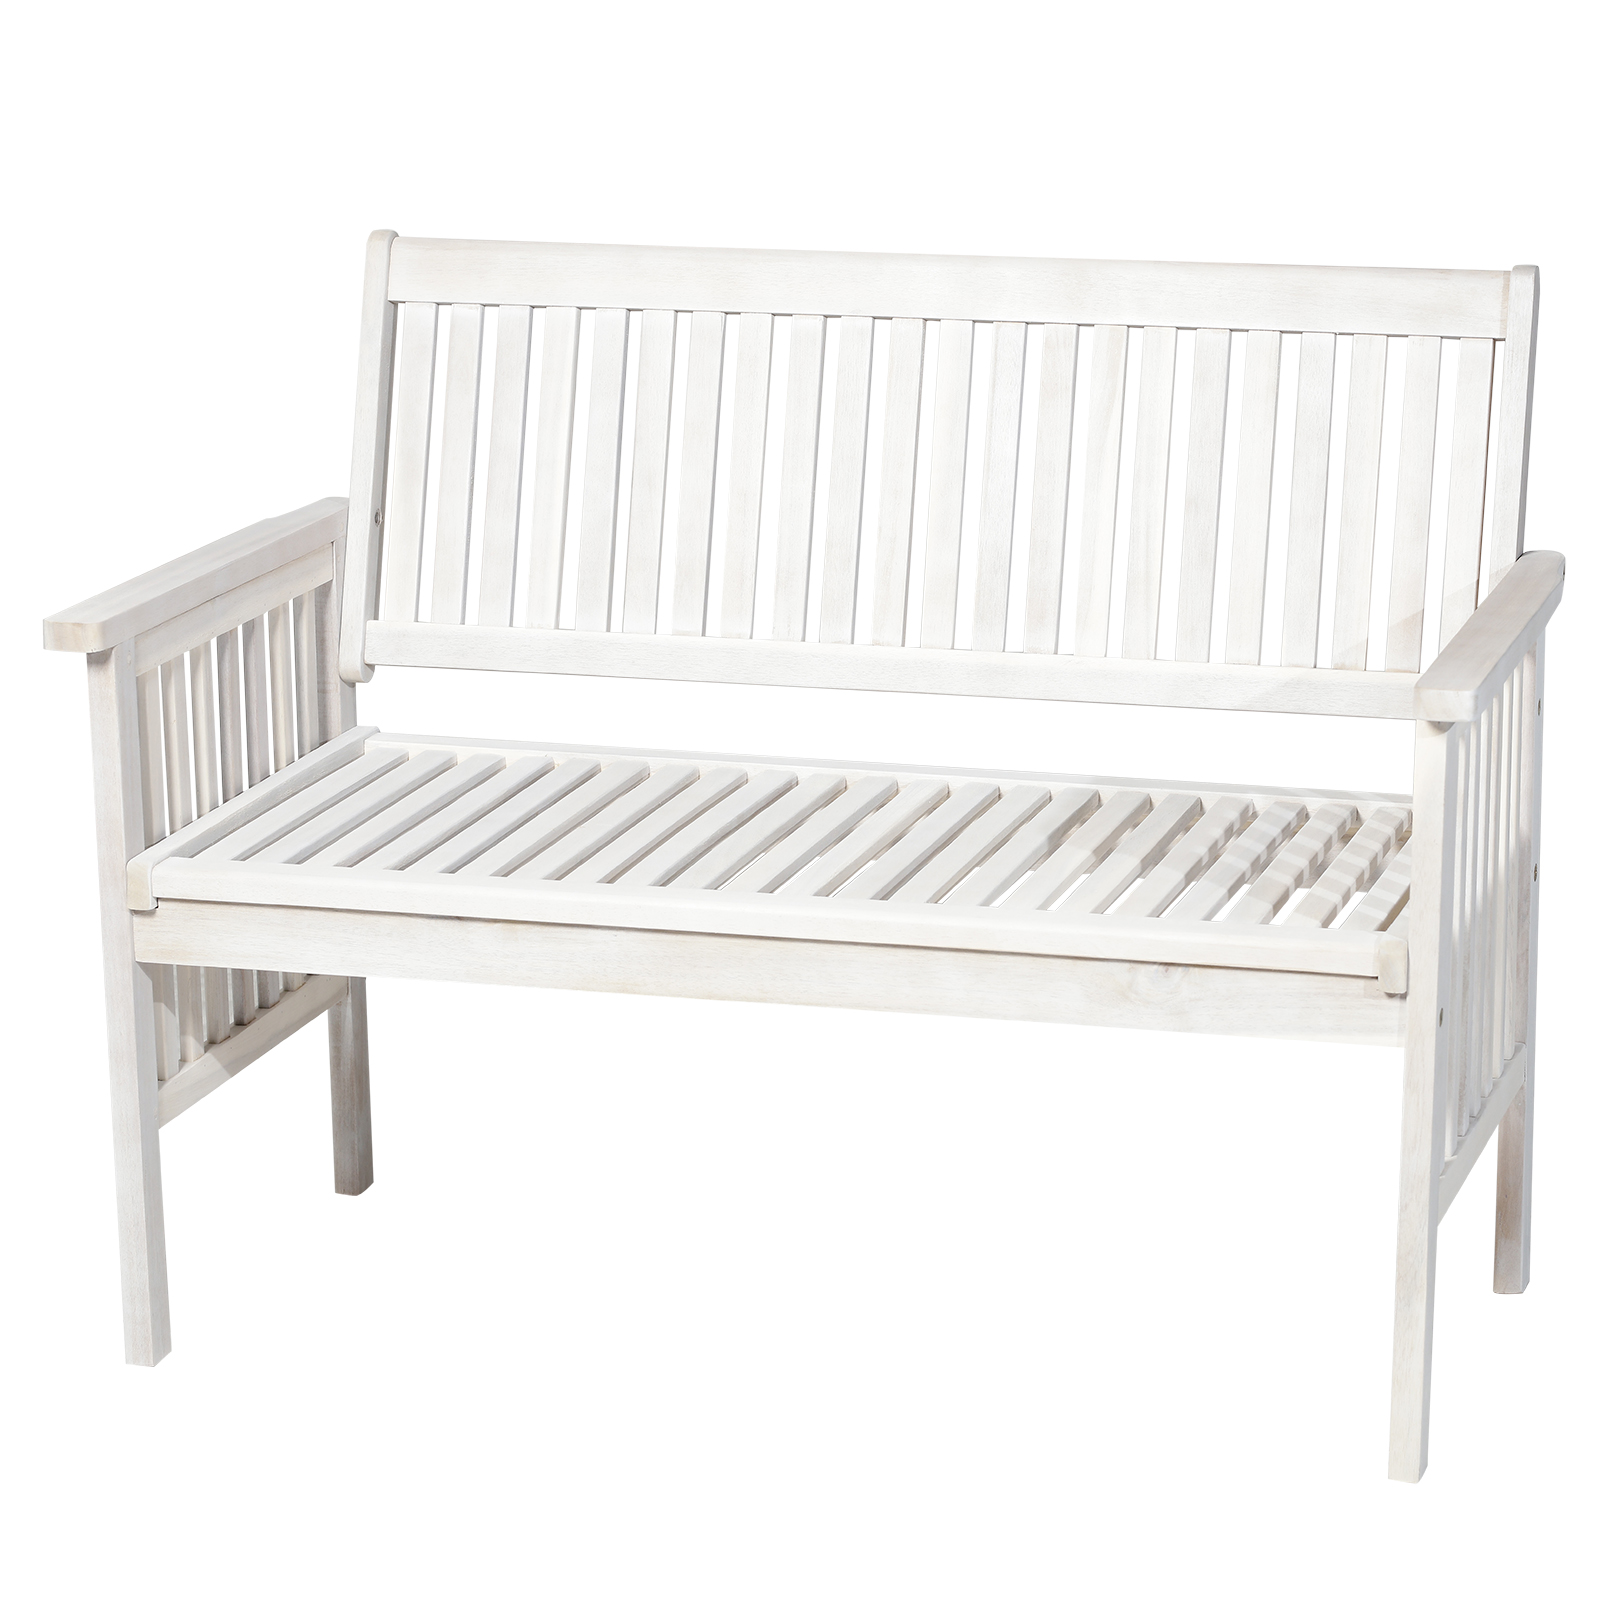 Outsunny Bench Garden 2 People Outdoor Acacia Wood Slatted 117x63x90 Cm White